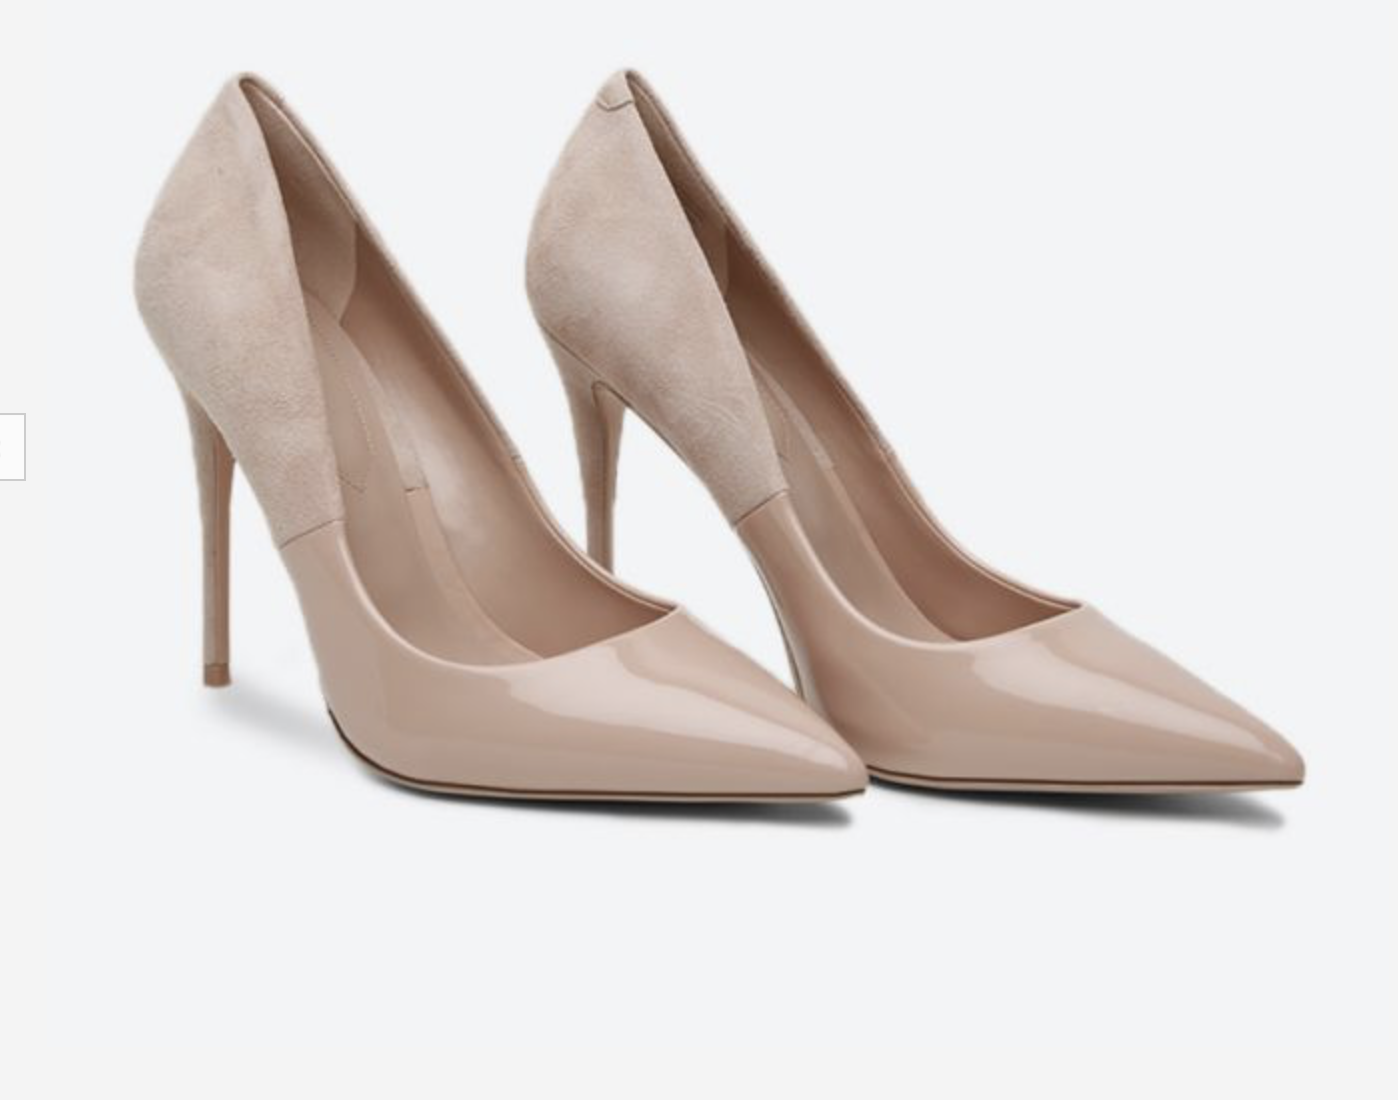 steely Aldo nude high heels - workwear